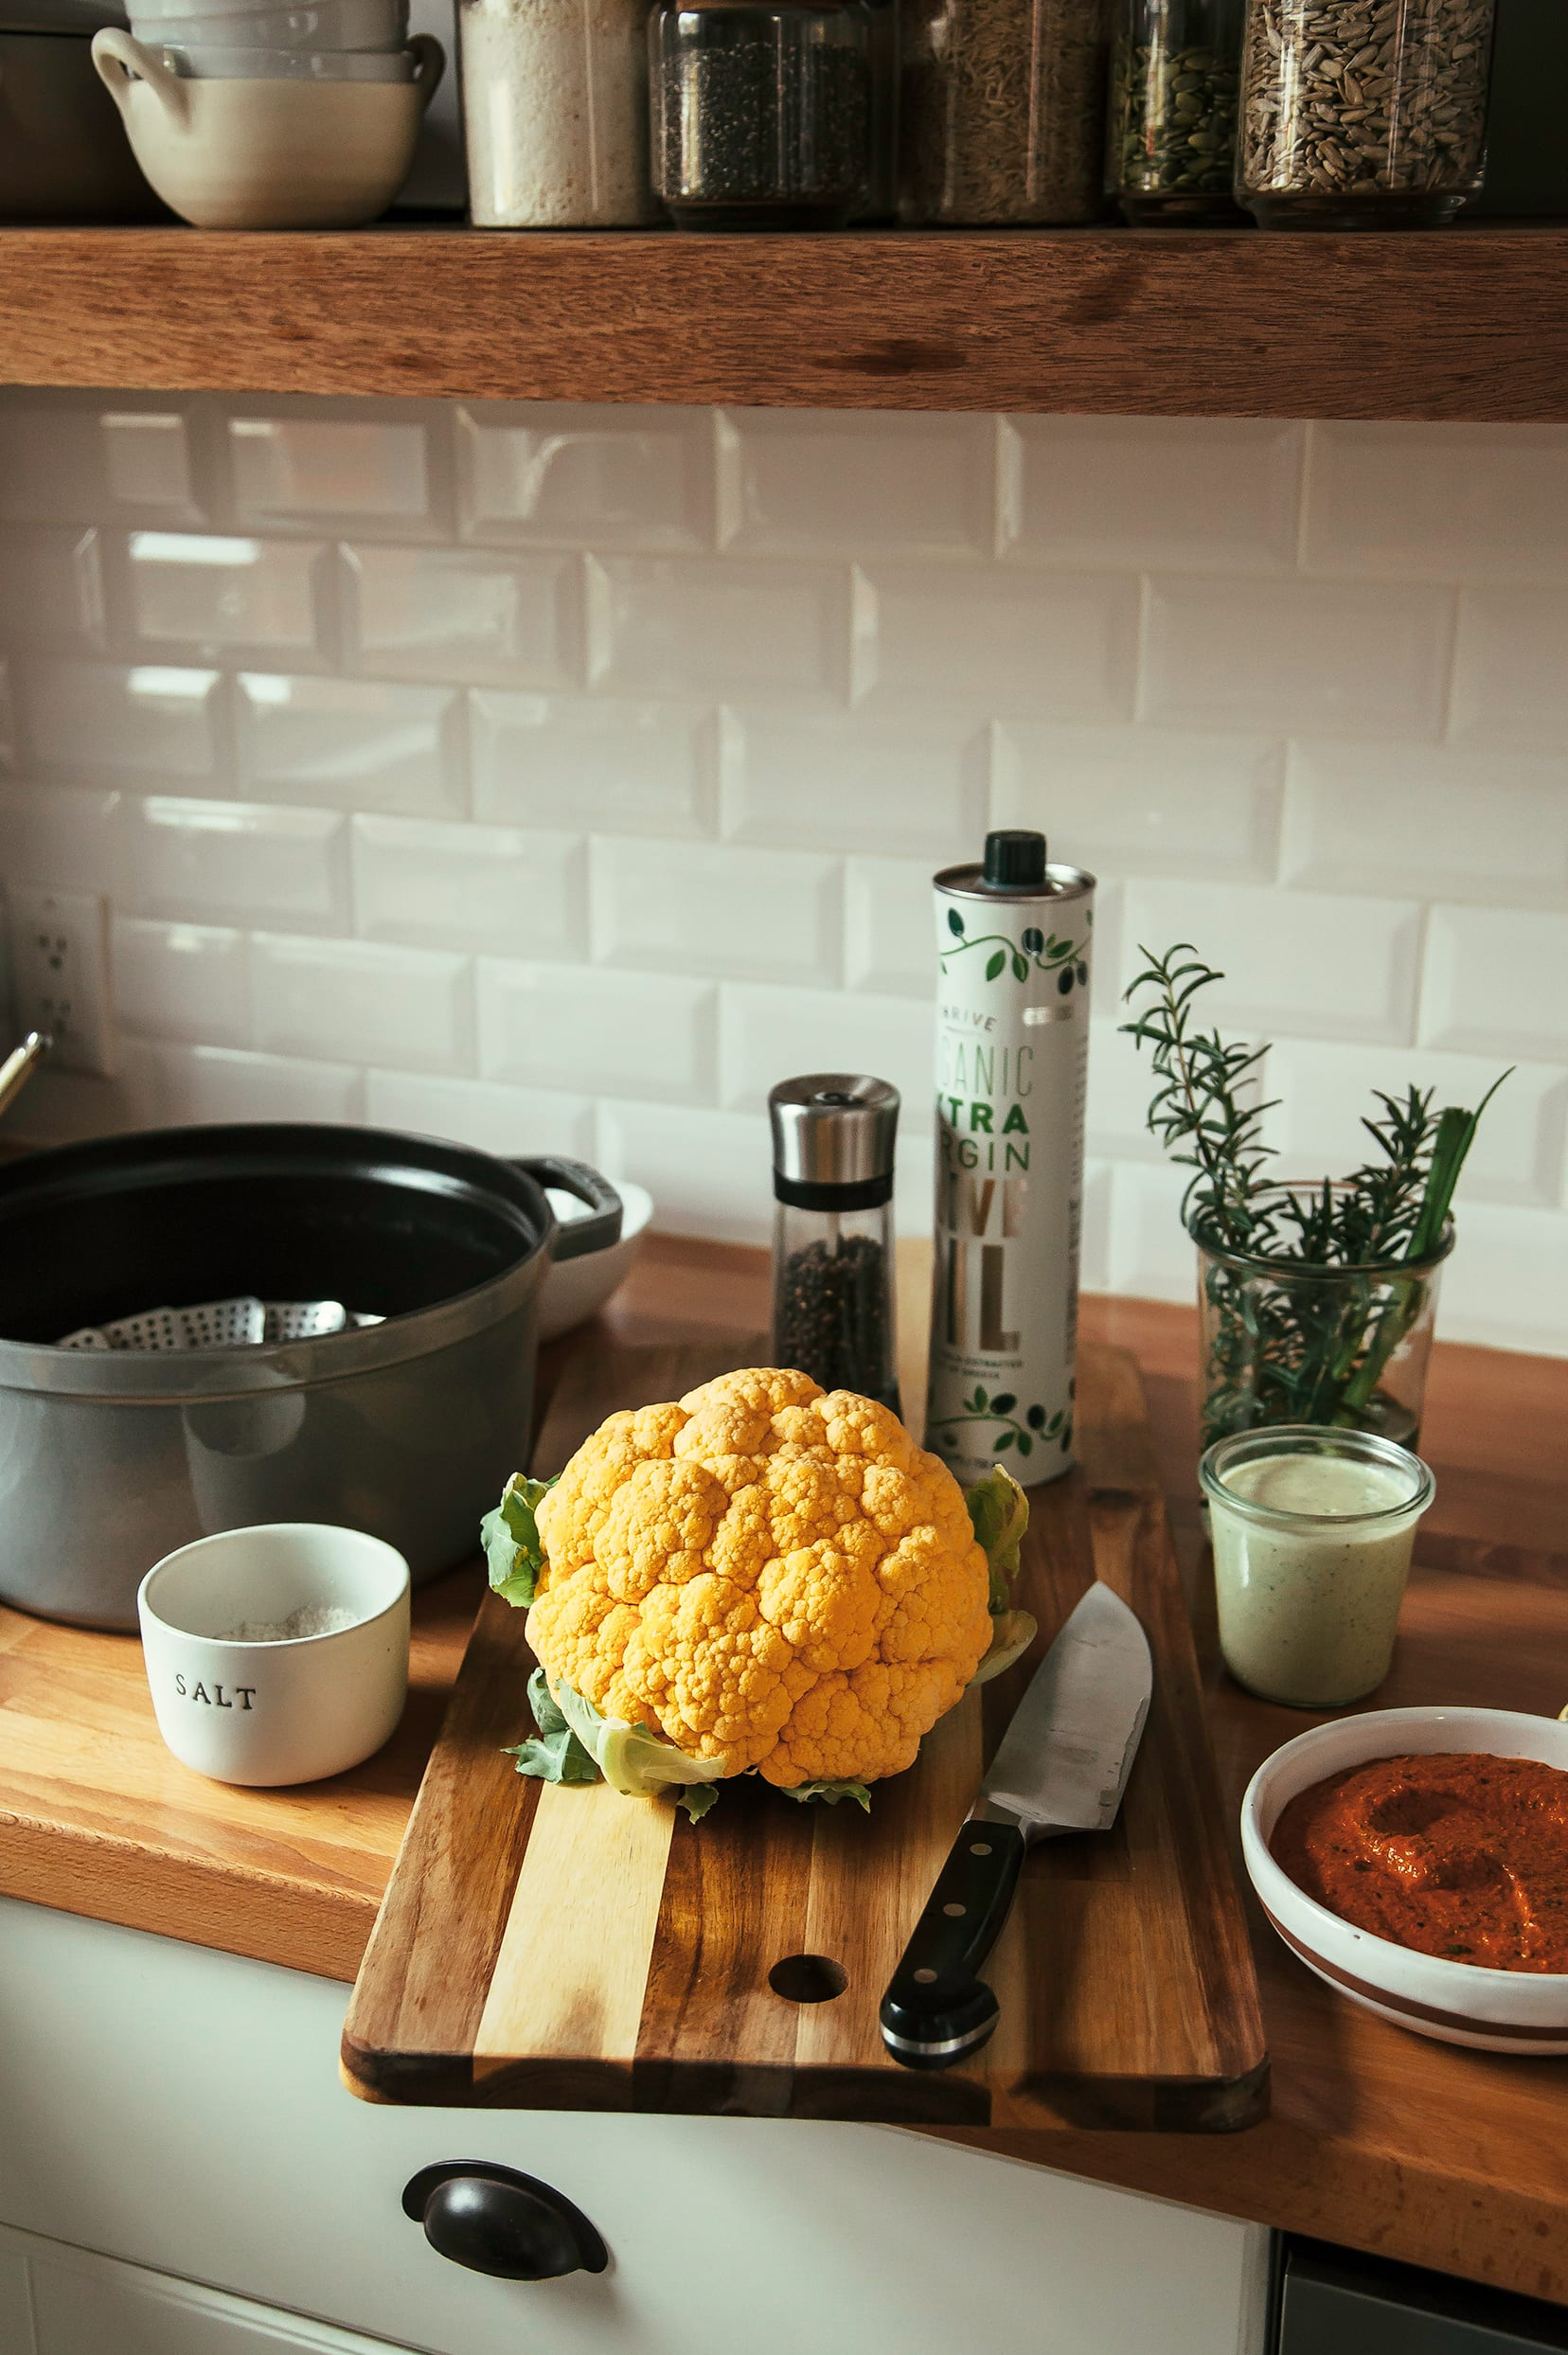 A whole cauliflower and other prepped ingredients are shown on a kitchen counter.